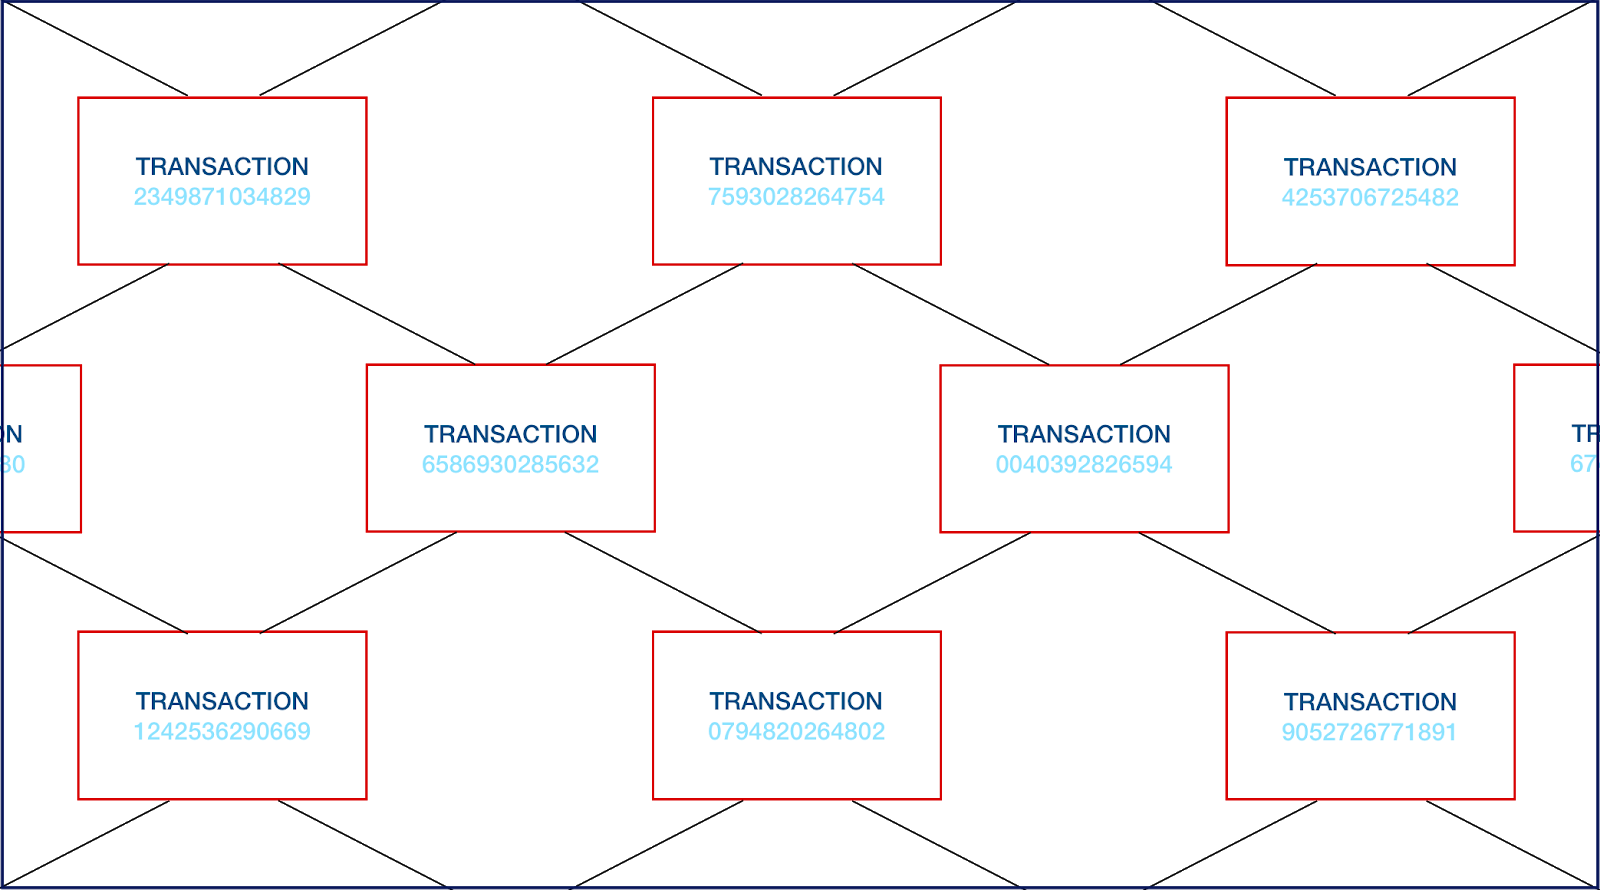 A network of transactions represented by blocks.